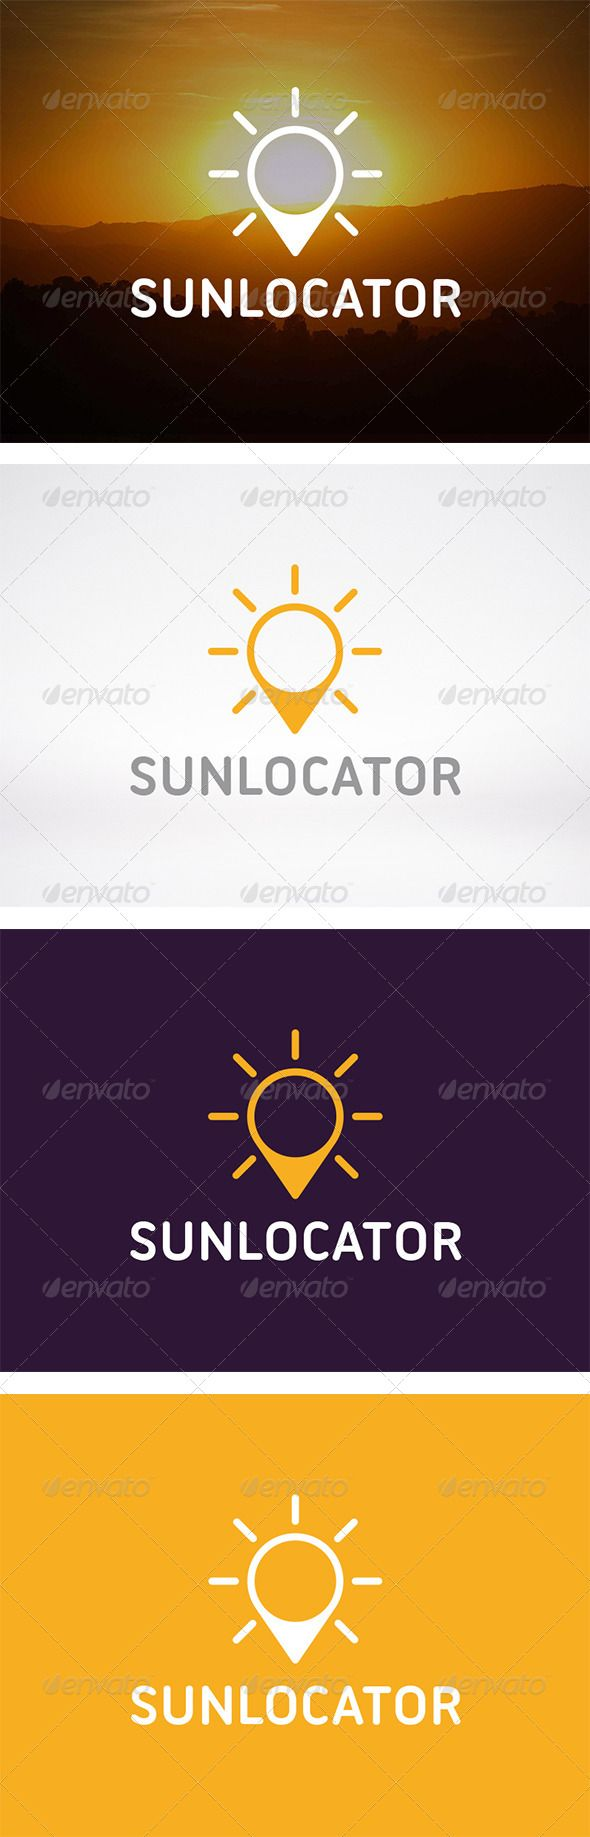 Sun Locator Logo #GraphicRiver - Three color version: color, greyscale and single color. - The logo is 100% resizable. - You can change text and colors very easy using the named and organized layers that includes the file. - The typography used is Ubuntu Titling you can download here: .fontsquirrel /fonts/Ubuntu-Titling Created: 30October13 GraphicsFilesIncluded: VectorEPS #AIIllustrator Layered: Yes MinimumAdobeCSVersion: CS Resolution: Resizable Tags: business #earth #eco #energy…